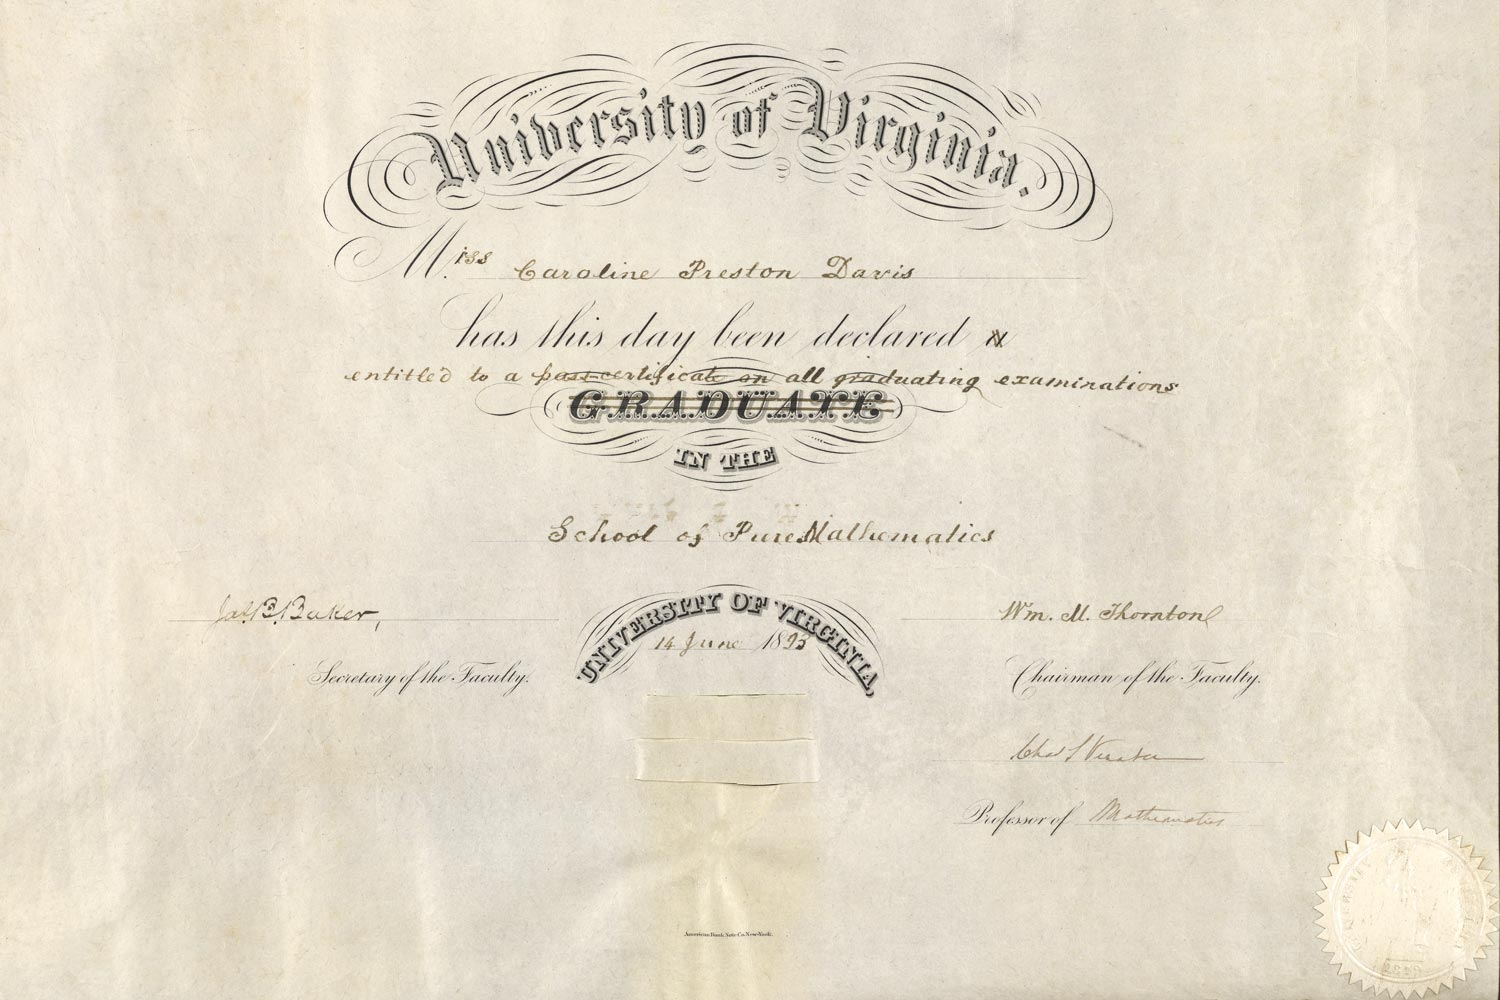 In 1893, the University did not grant Caroline Preston Davis a diploma, though she passed with distinction, but instead issued a certificate in mathematics  – because she was female.